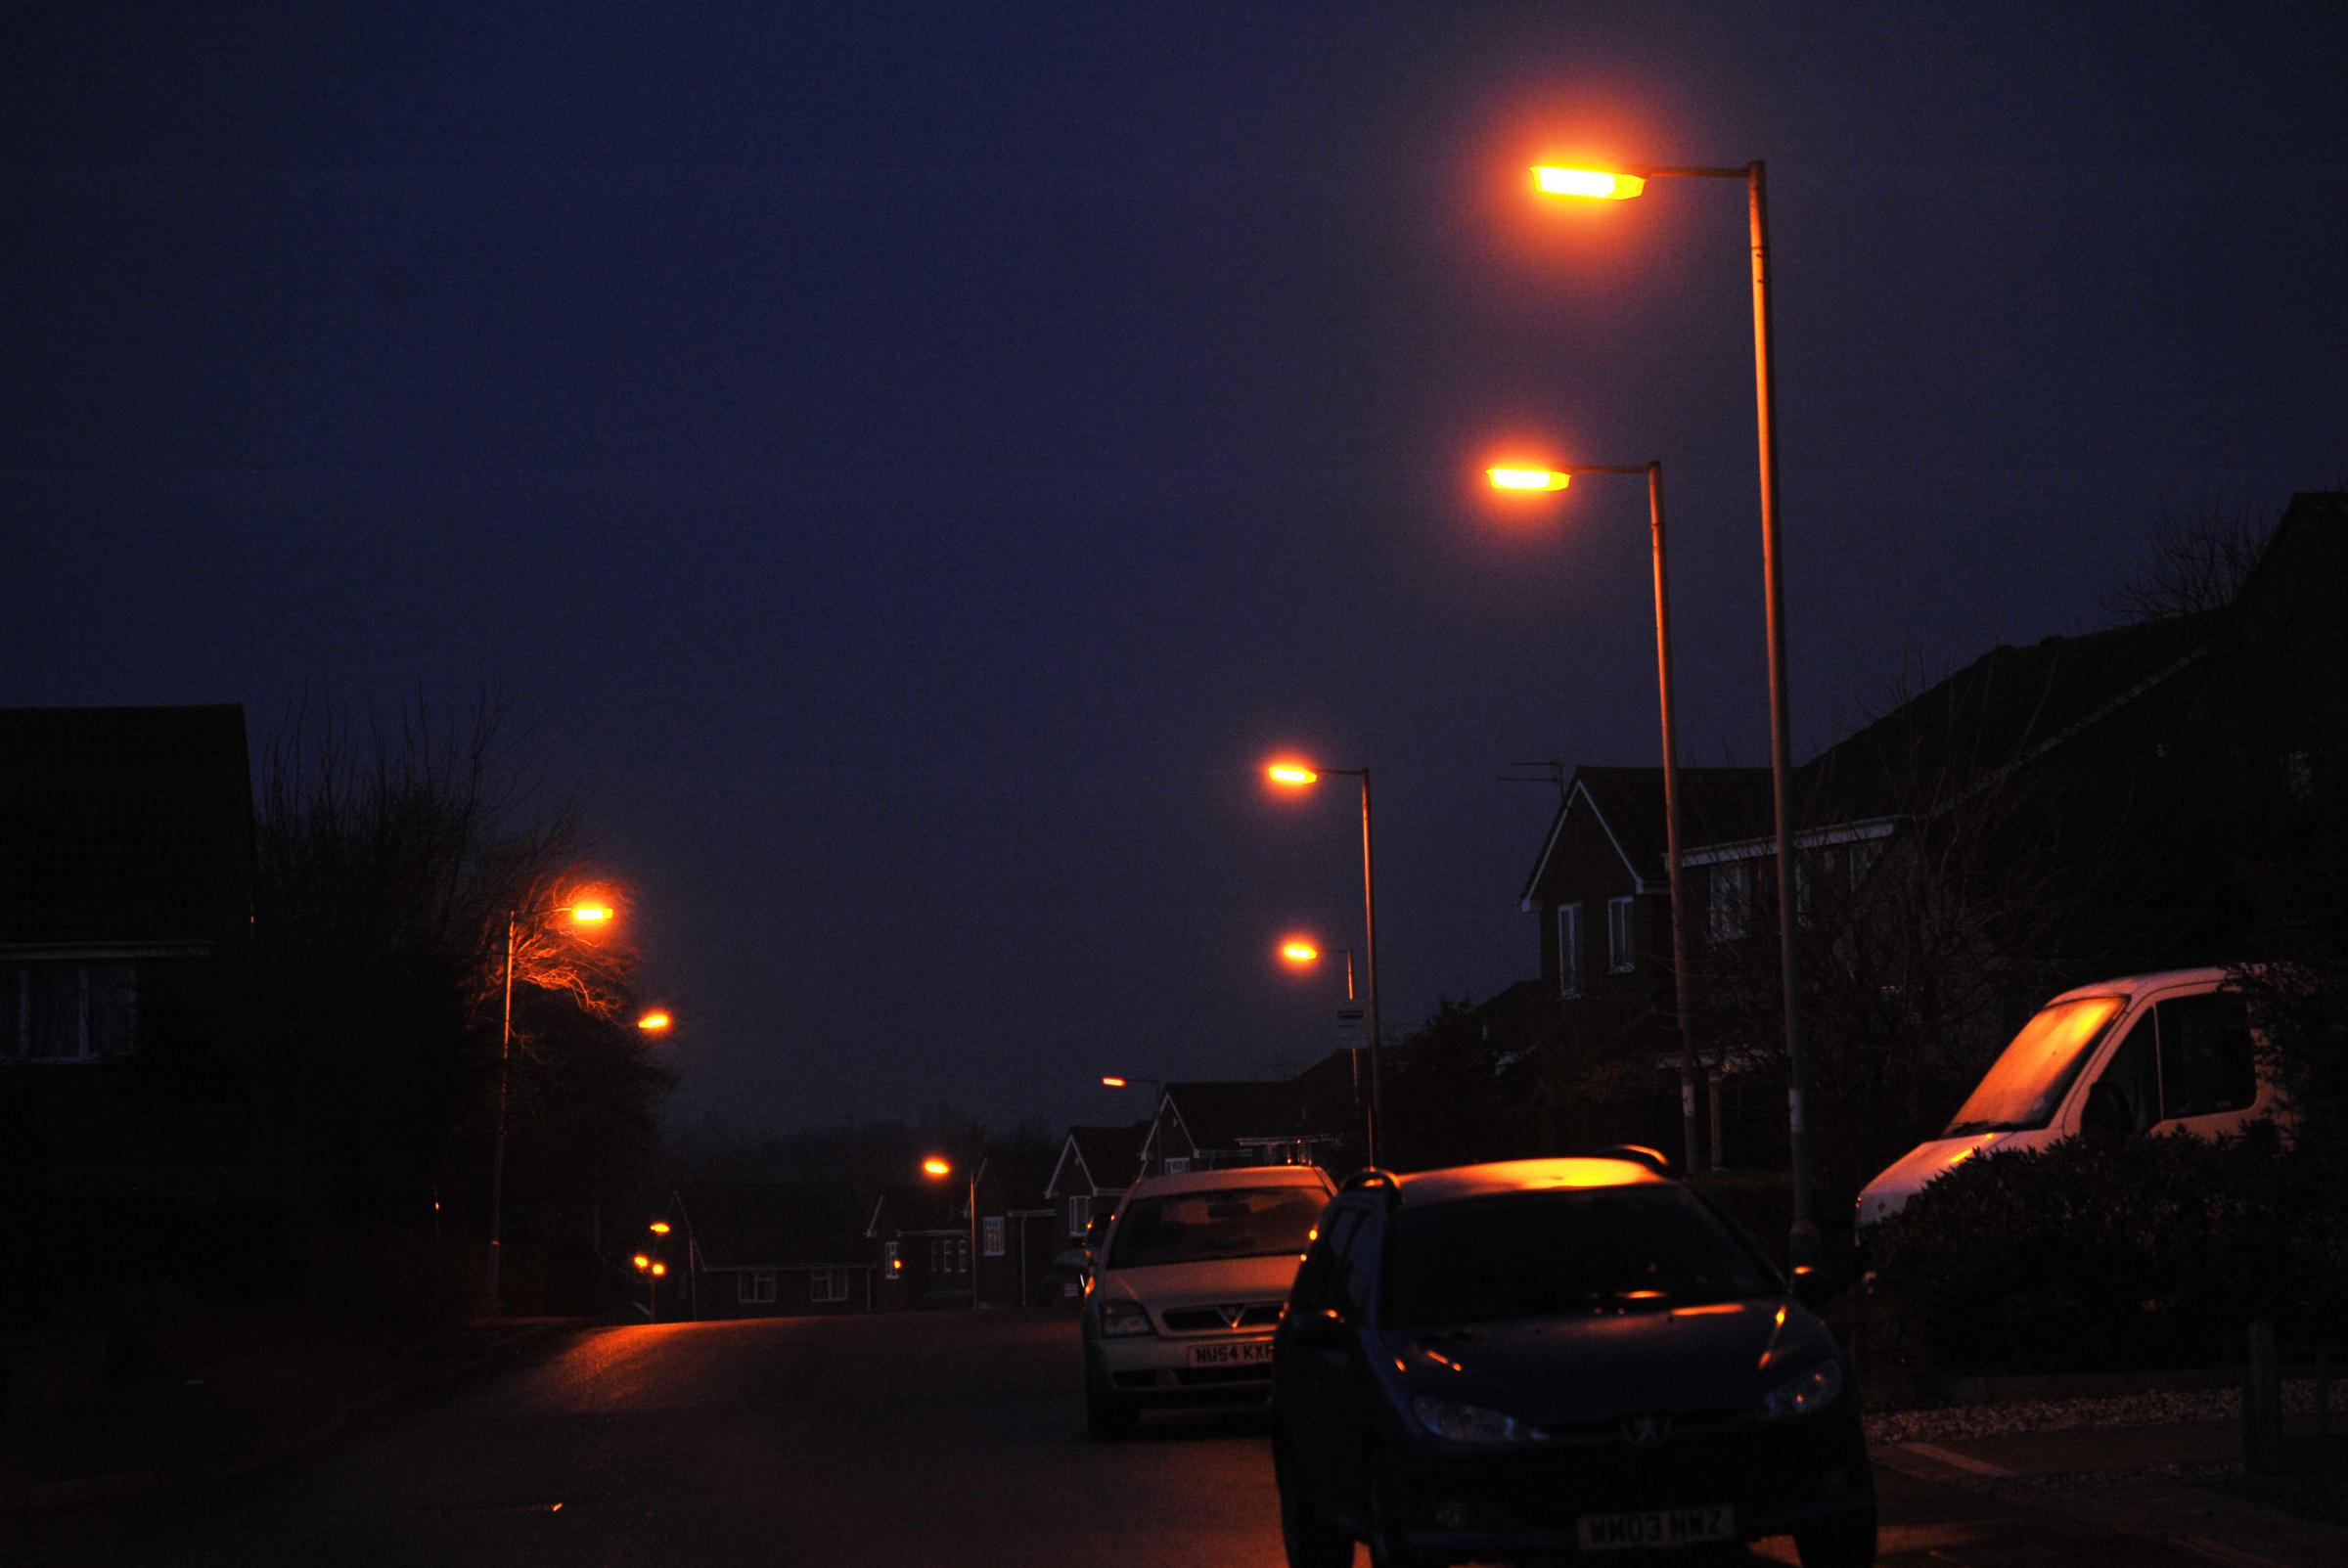 North Yorkshire County Council will consider spending £800,000 replacing street lights